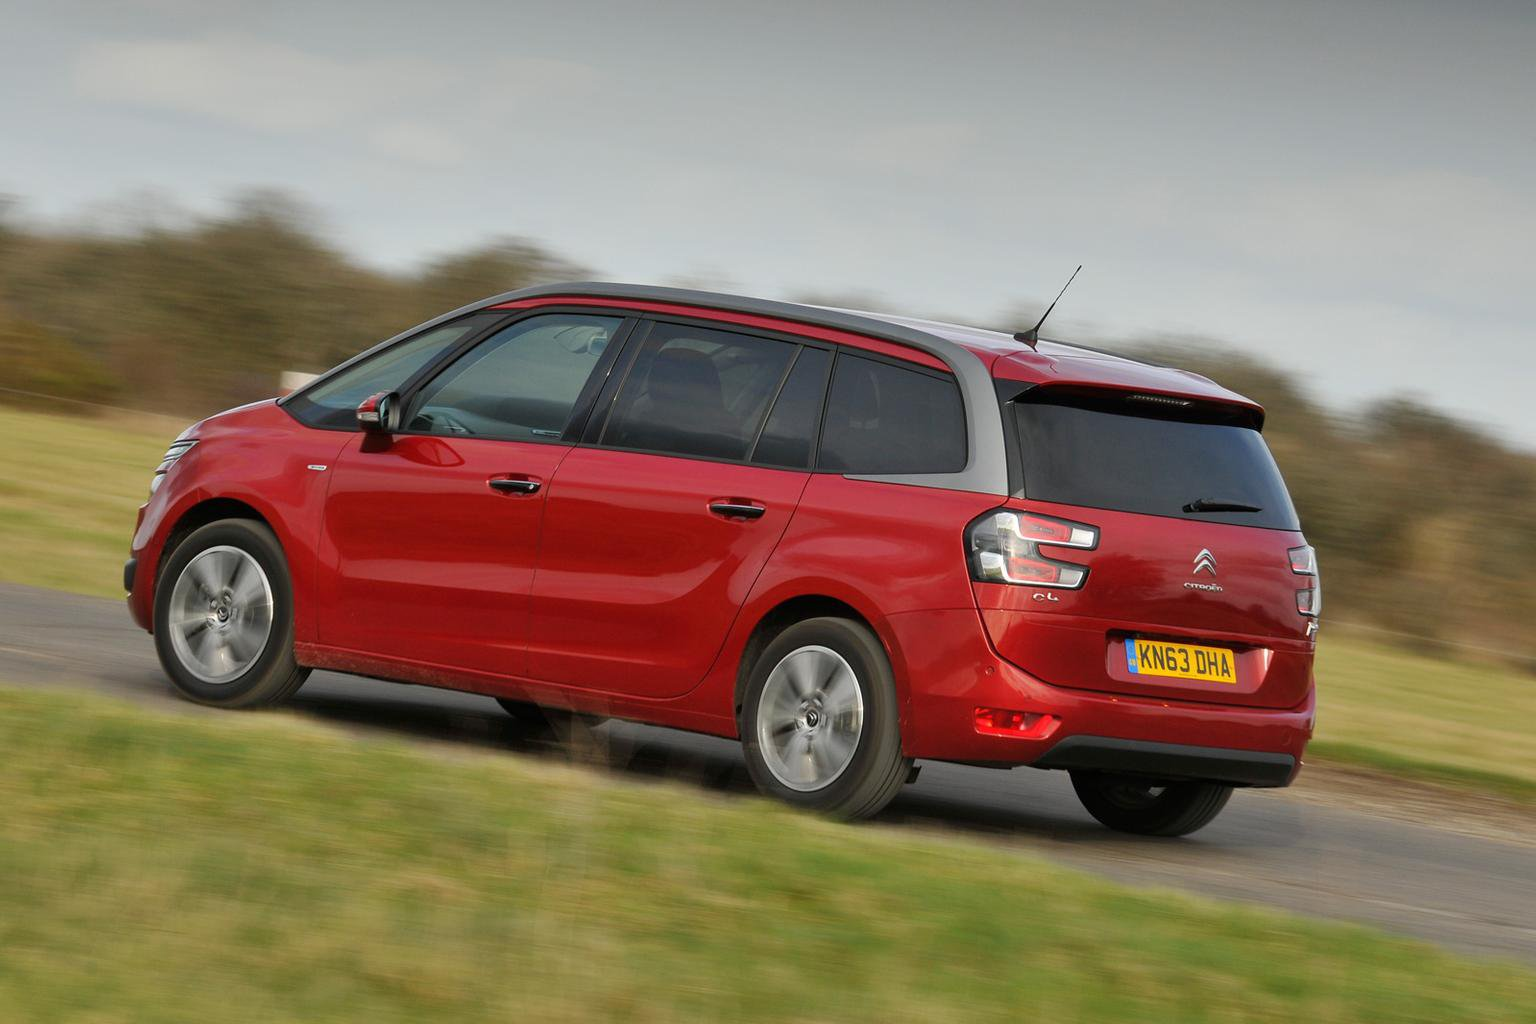 Our cars: Lexus IS, Citroen Grand C4 Picasso and Honda Civic Tourer